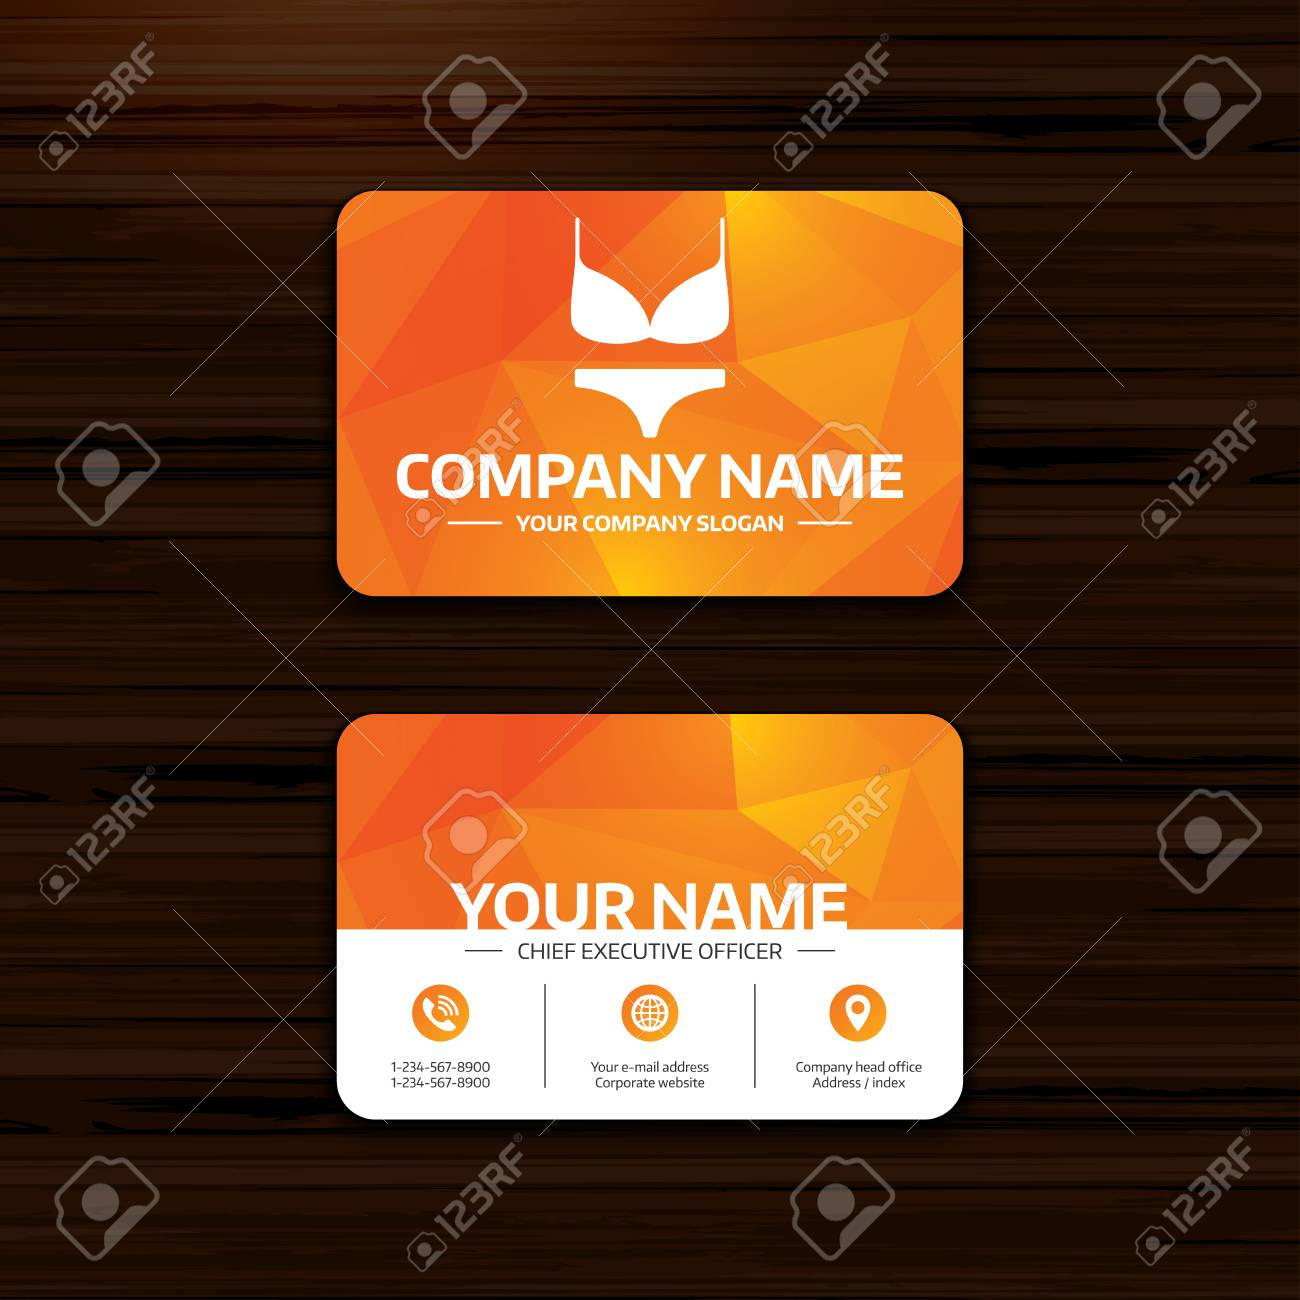 Business or visiting card template women bra and panties sign business or visiting card template women bra and panties sign icon intimates underwear symbol colourmoves